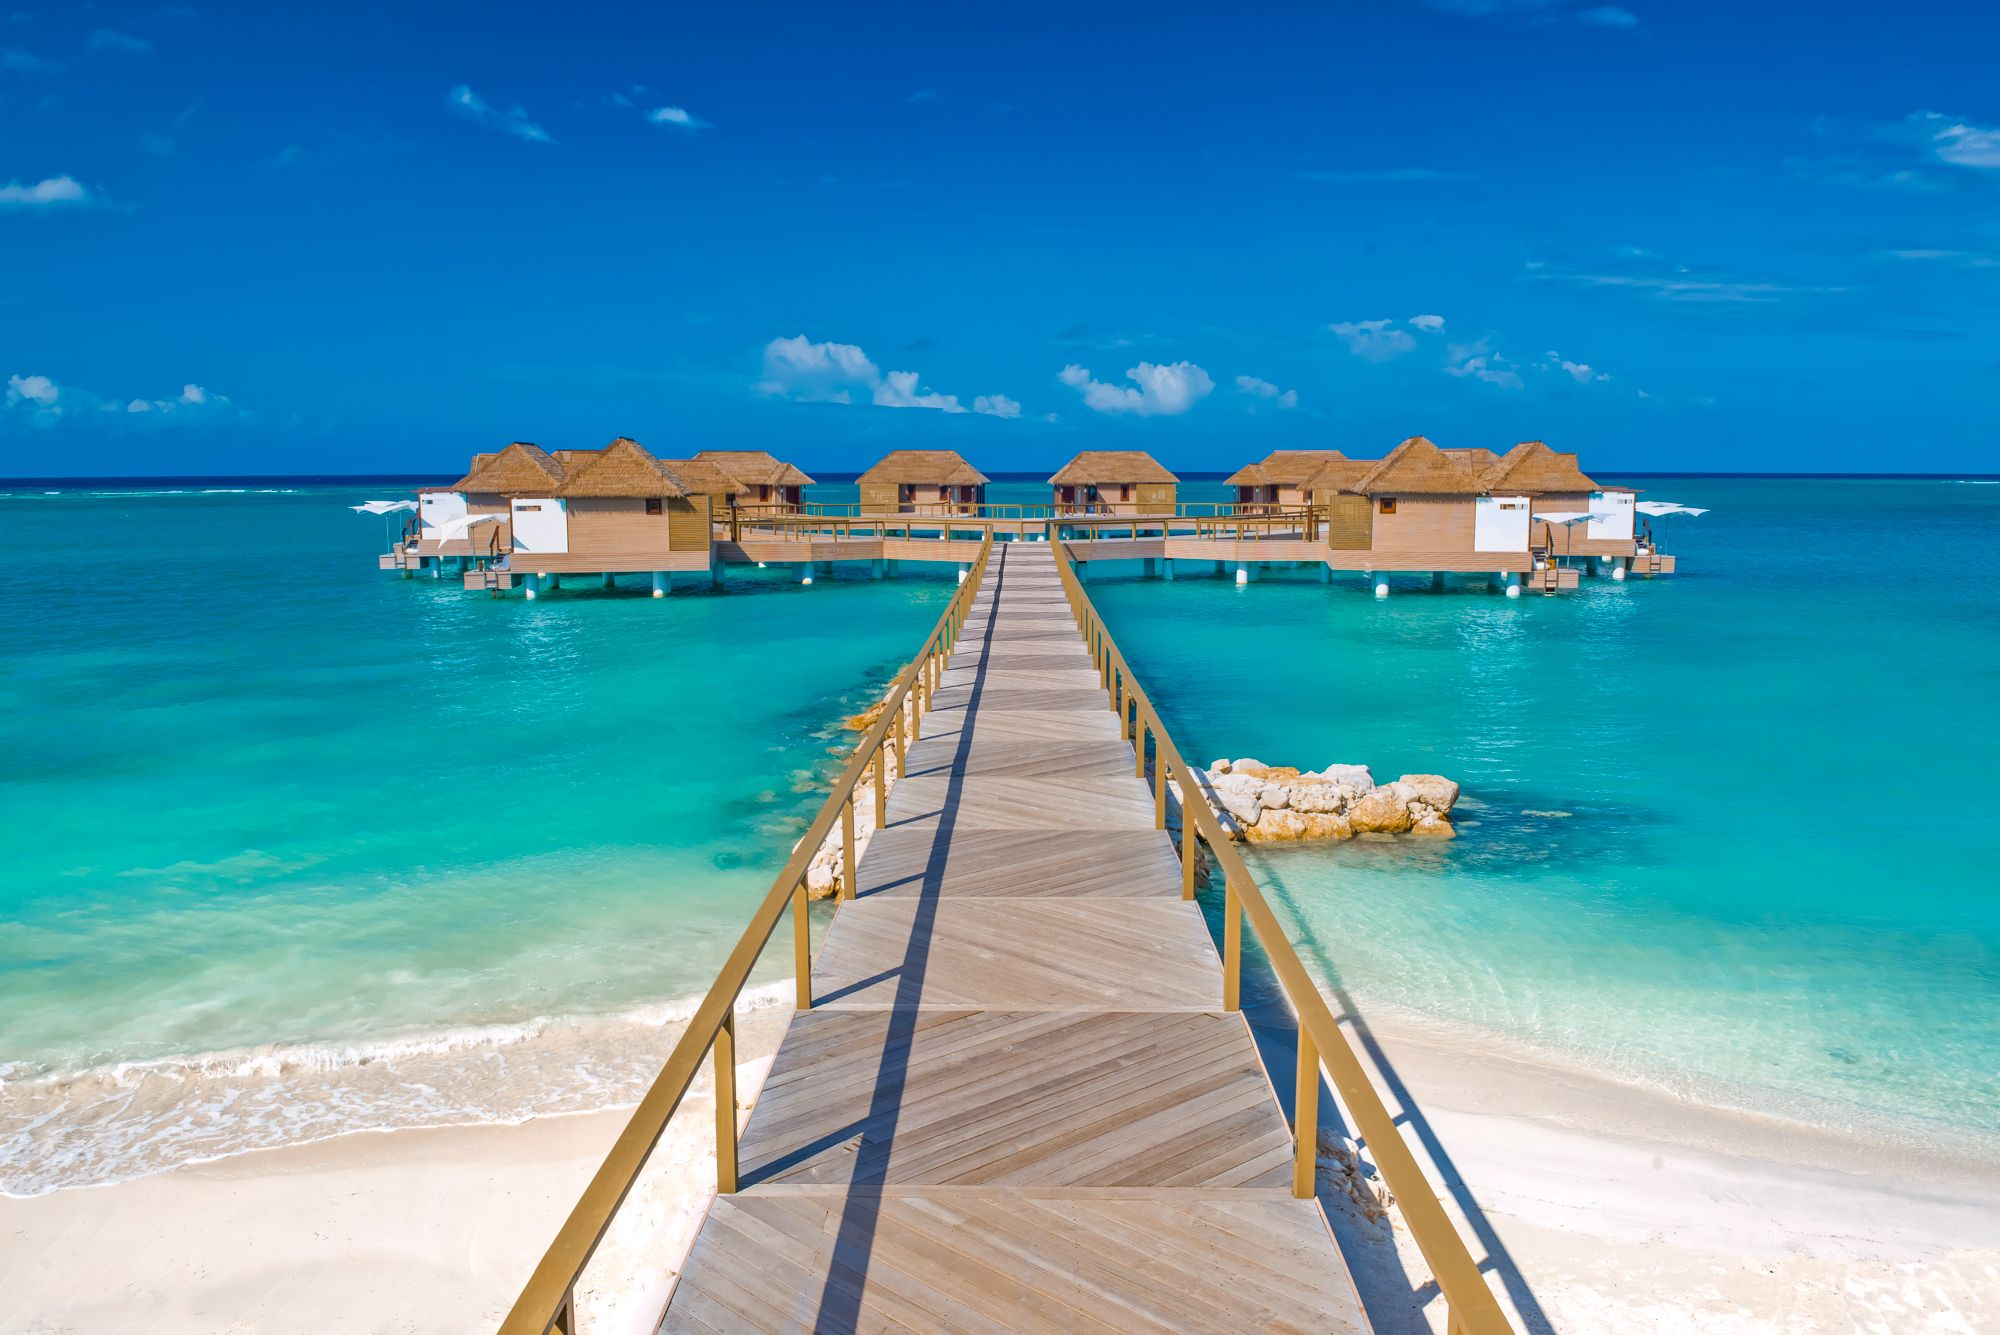 Sandals-South-Coast-overwater-bungalows